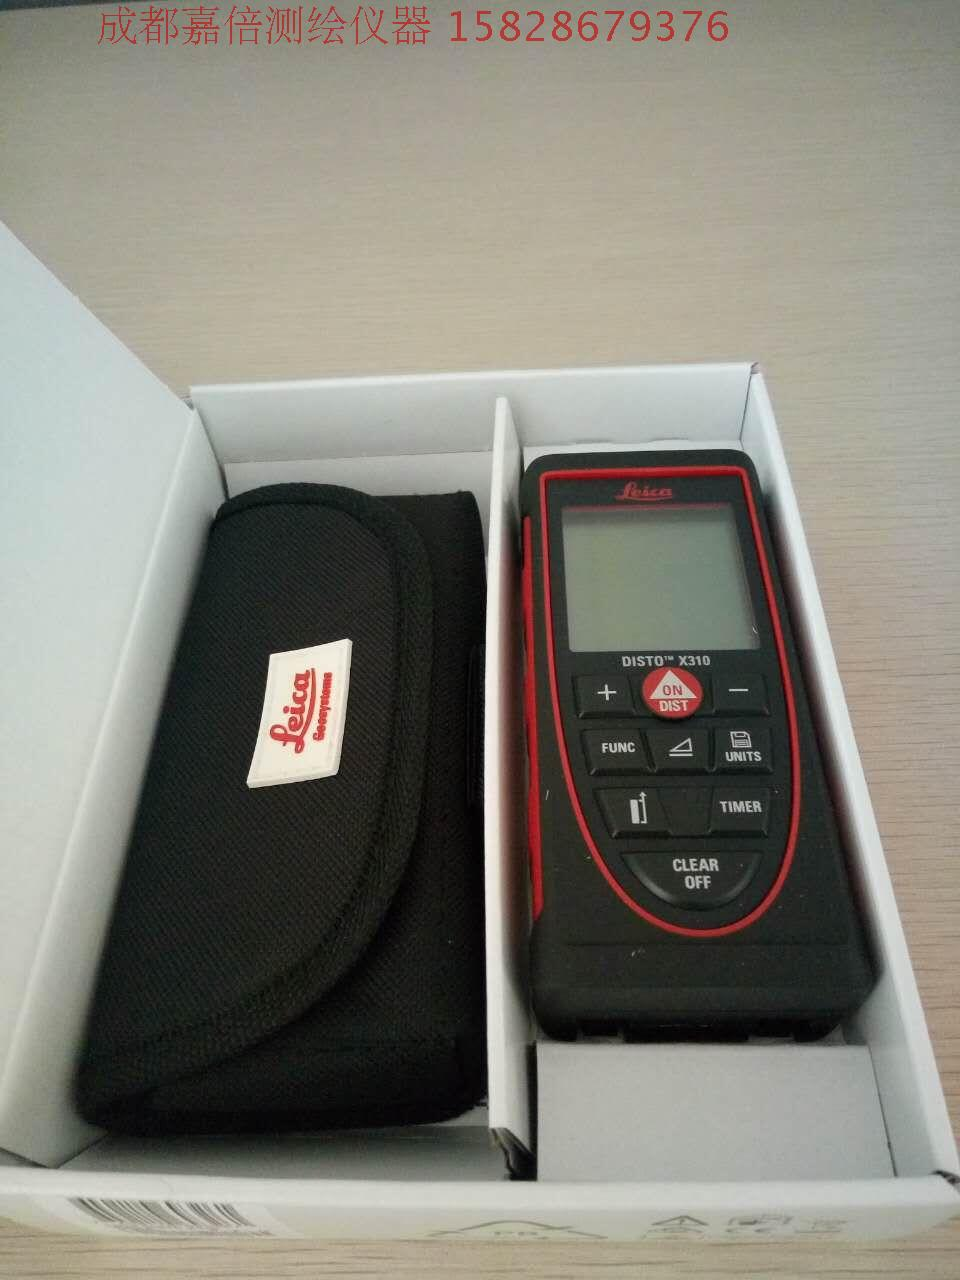 Free Shipping Swiss Leica X310 Handheld Laser Rangefinder 120 Meters Instead Of D3A Leica Electronic Ruler